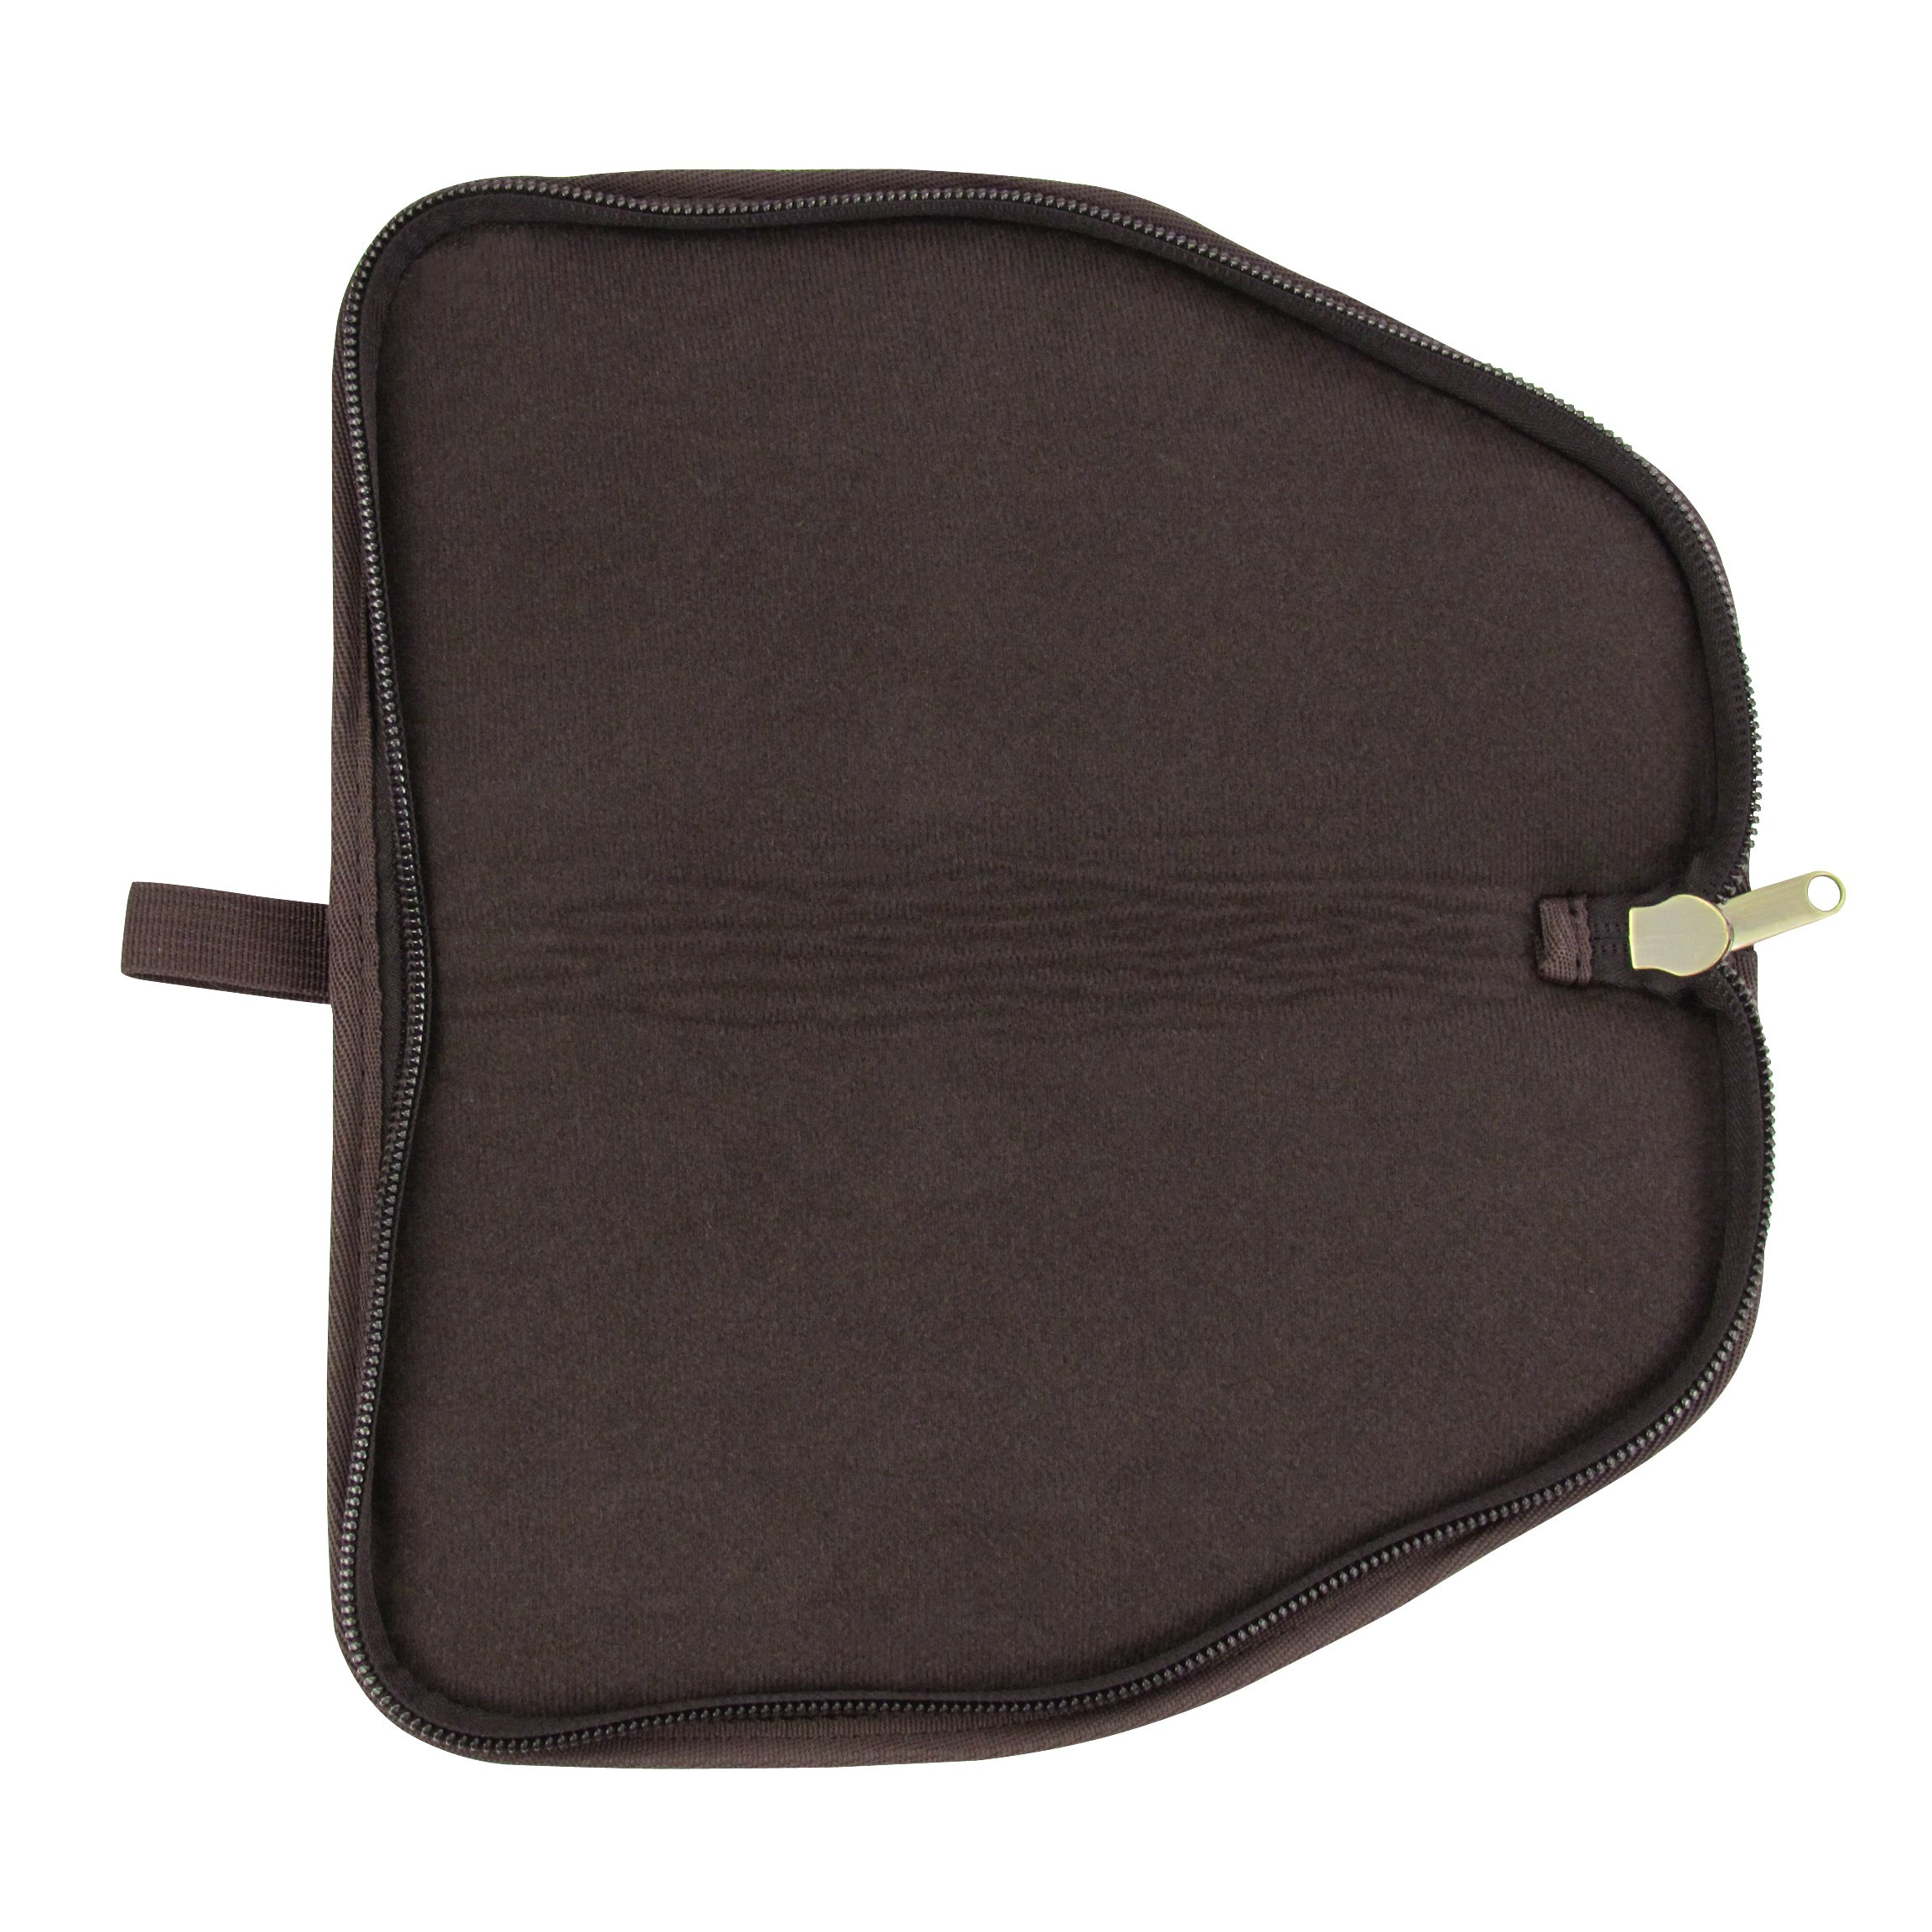 TOURBON Canvas Hand Gun Pouch Pistol Rug with Gun Accessories Pocket by TOURBON (Image #3)